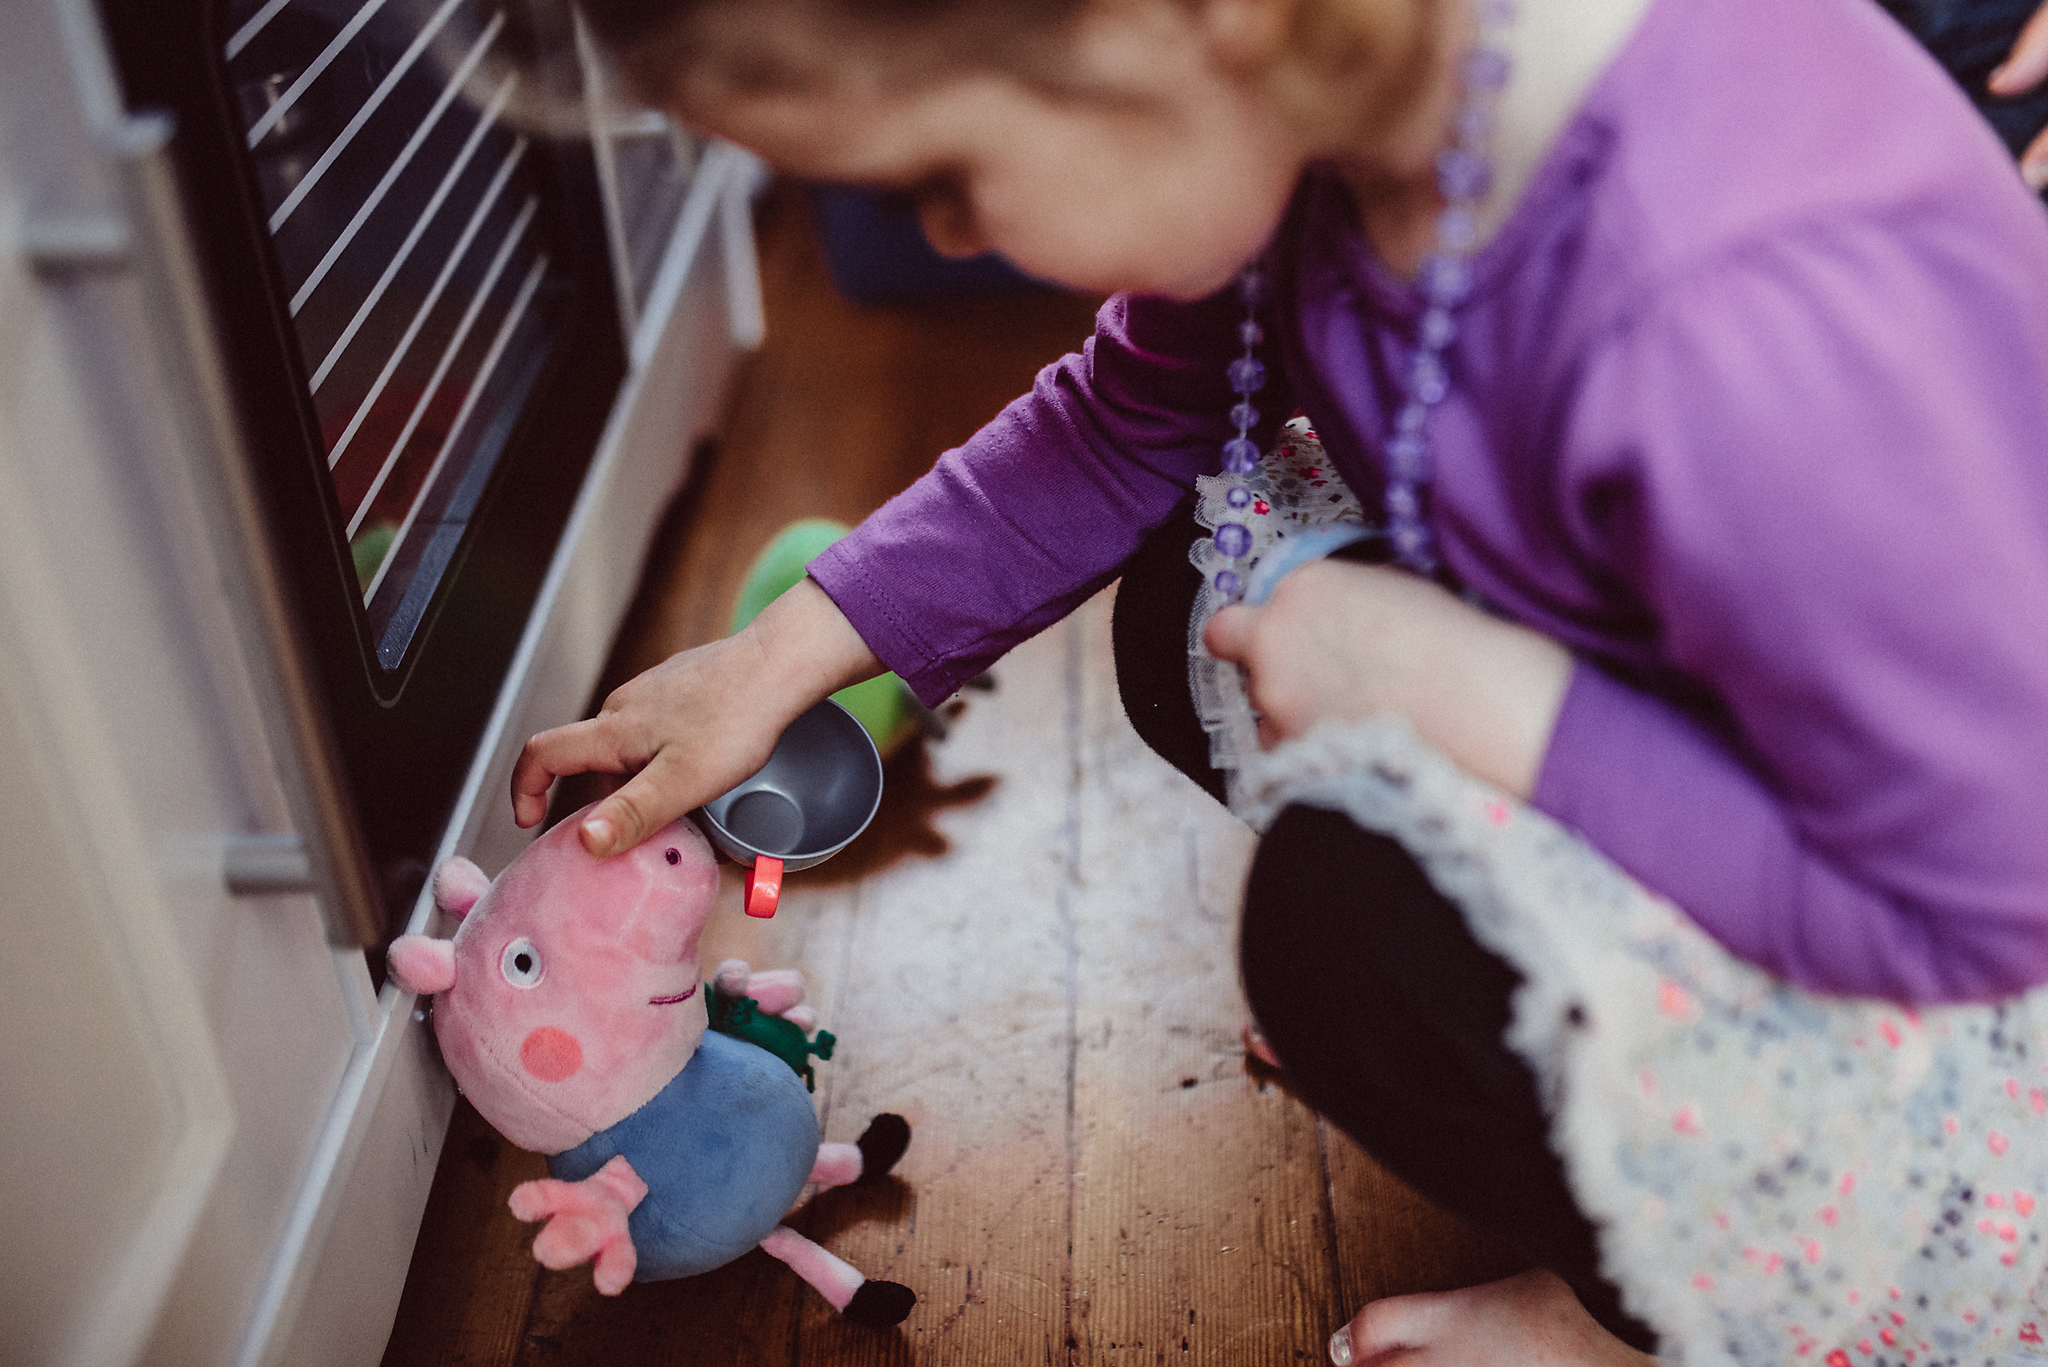 Little girl playing with stuffed pig in kitchen play room